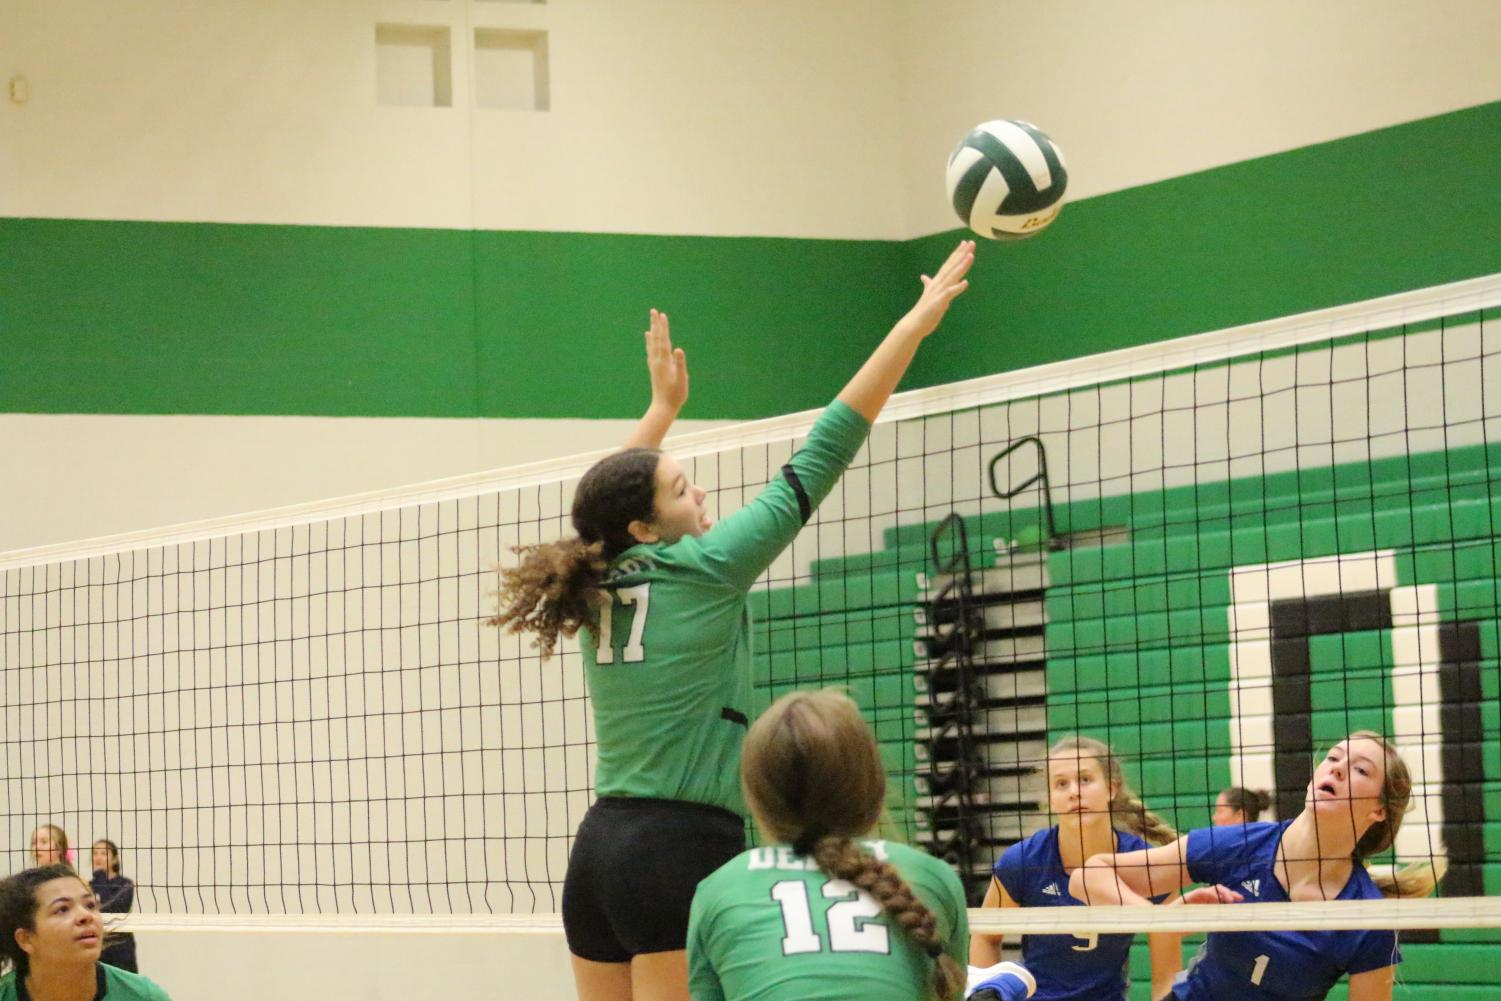 Junior+Antigone+Colon+jumps+up+and+blocks+the+ball+in+the+second+set+against+Washburn+Rural